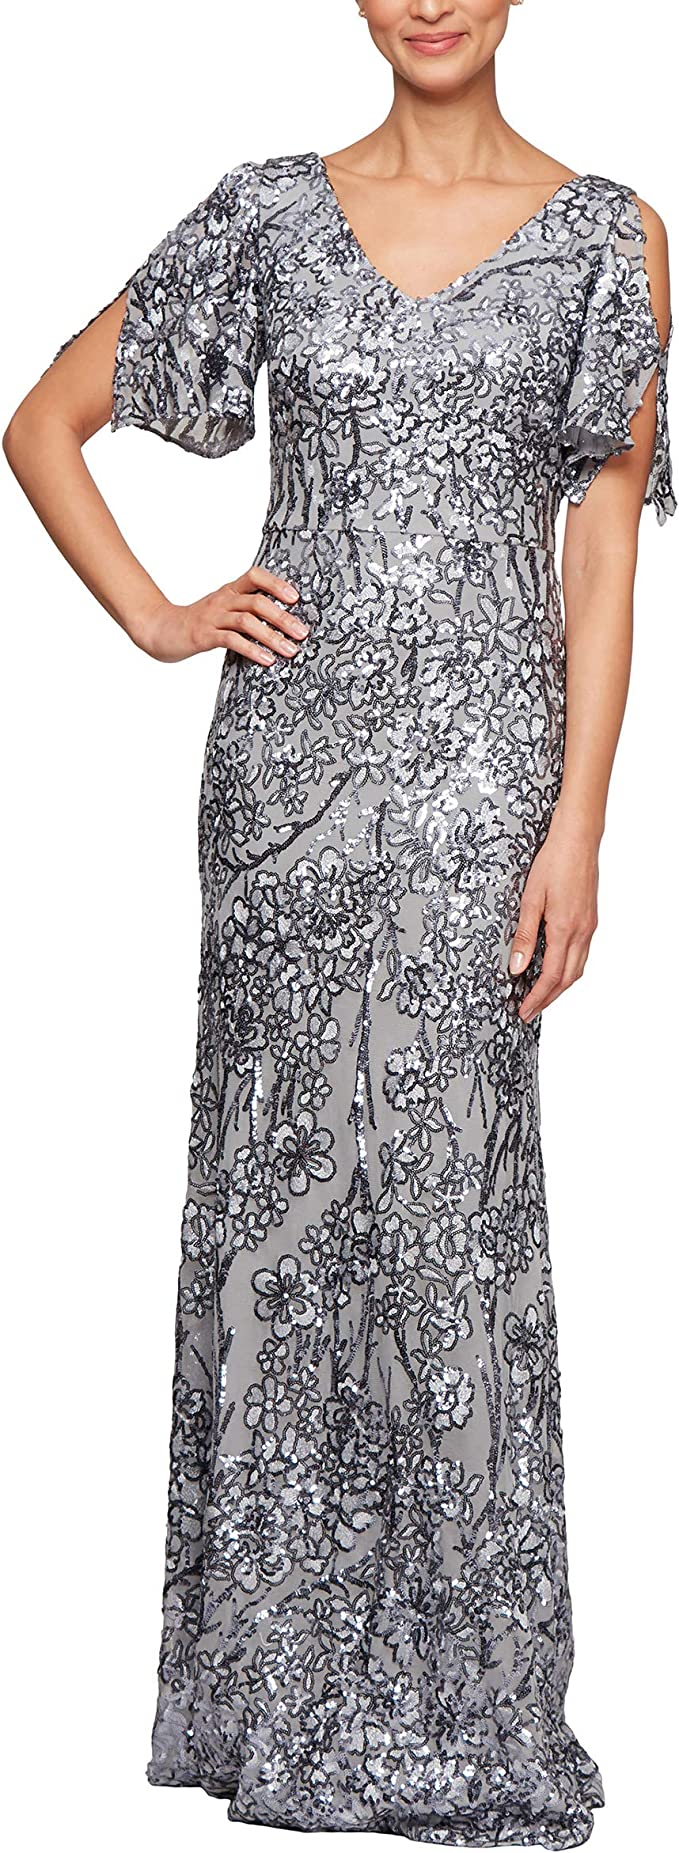 Sequin Dress with Flutter Sleeves